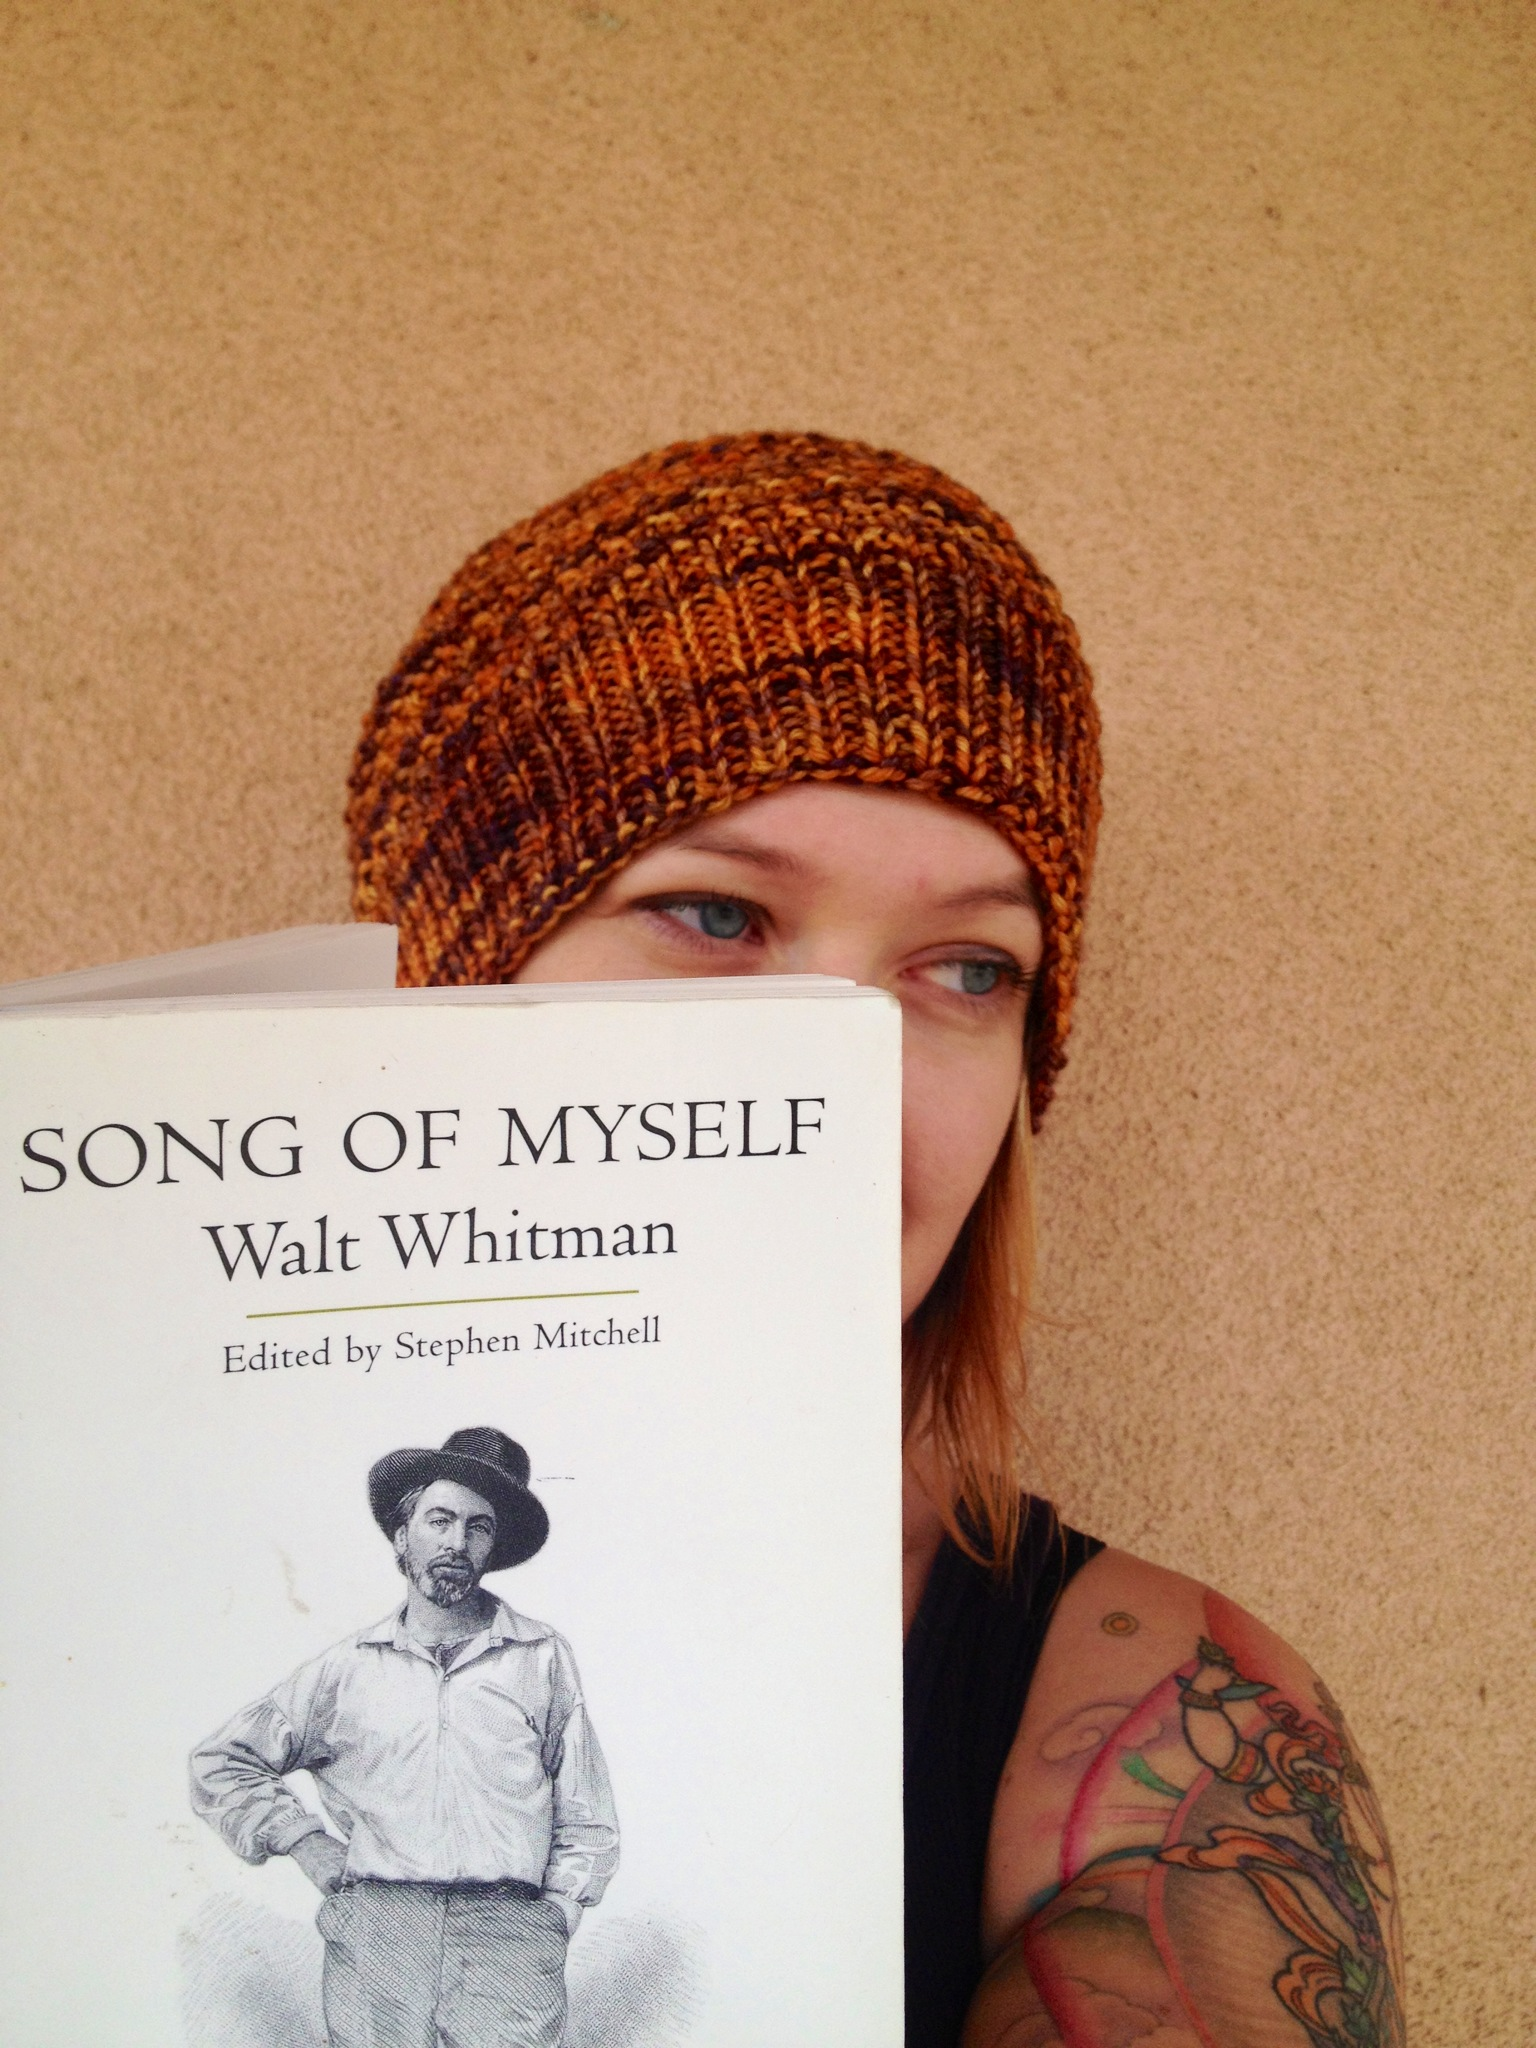 song of myself essays The meaning of life in walt whitman's song of myself essays the meaning of life in walt whitman's song of myself our culture seems to be fascinated by the unknown and specifically that which pertains to things of an eternal nature such as heaven, angels, god and the meaning of forever.